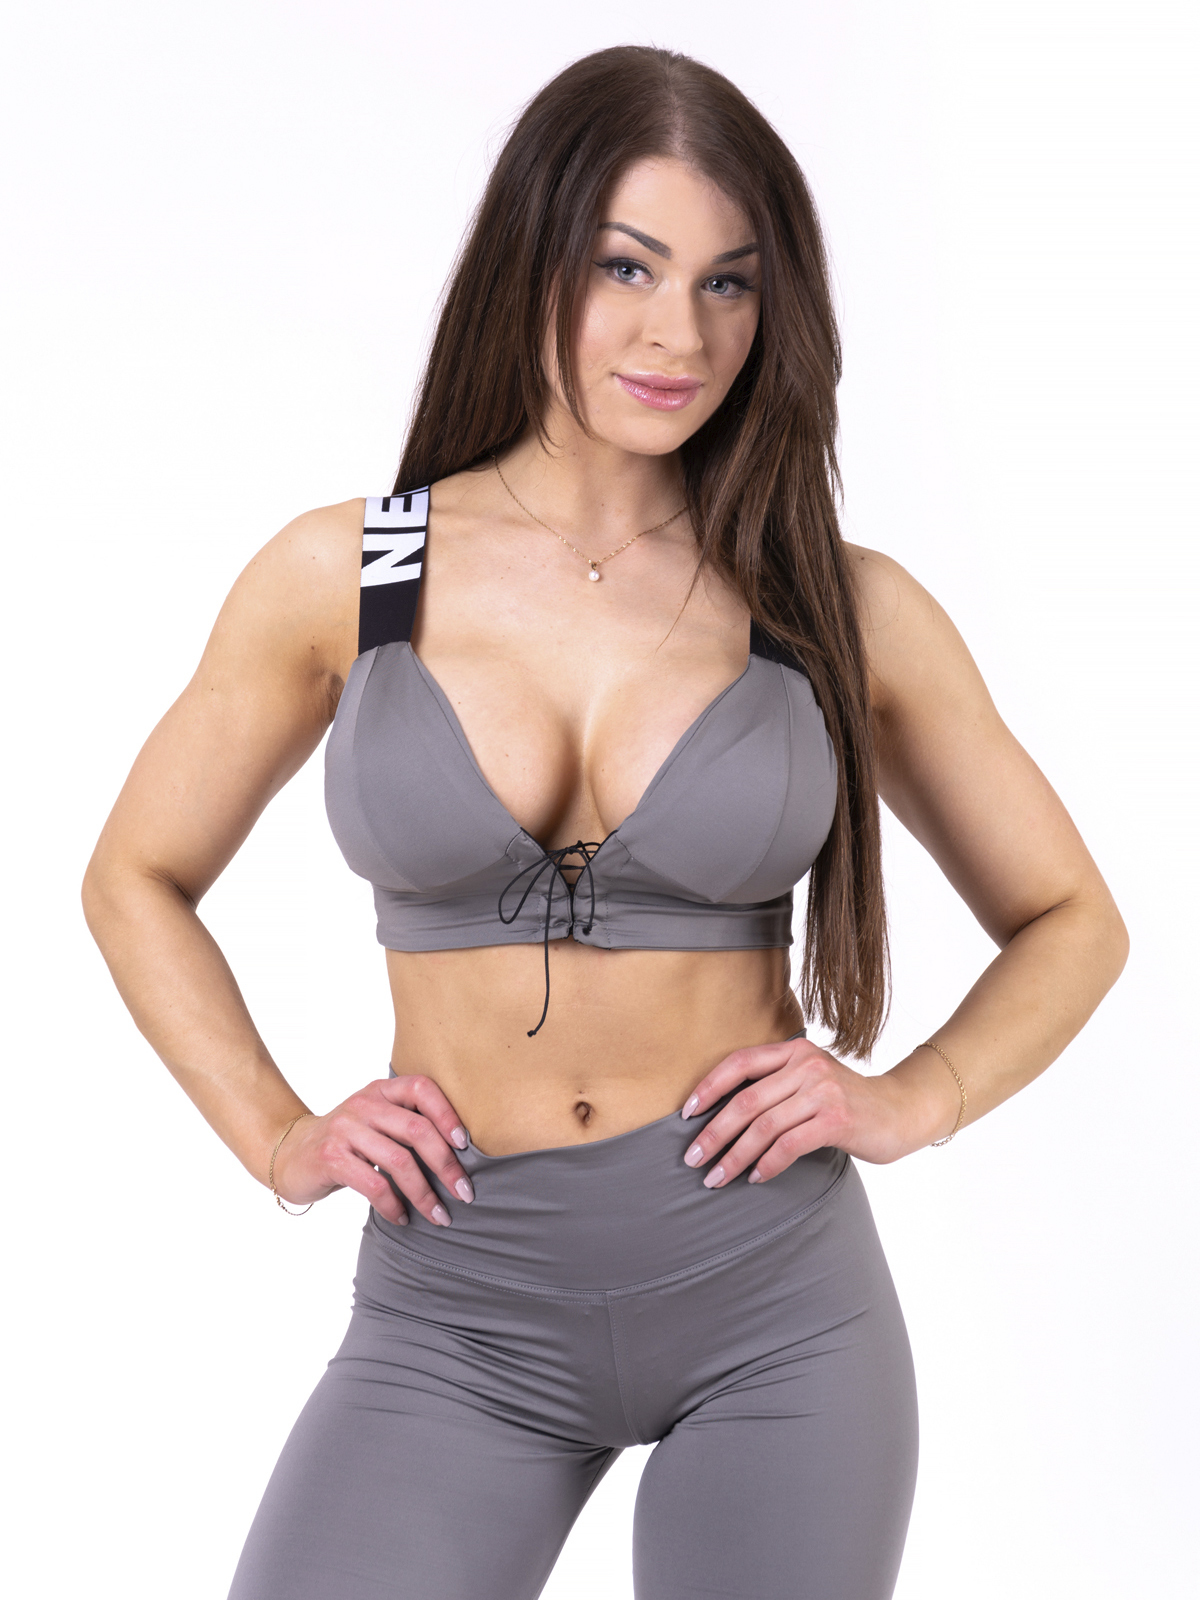 Женский топ Nebbia lace-up sport bra 694 metal